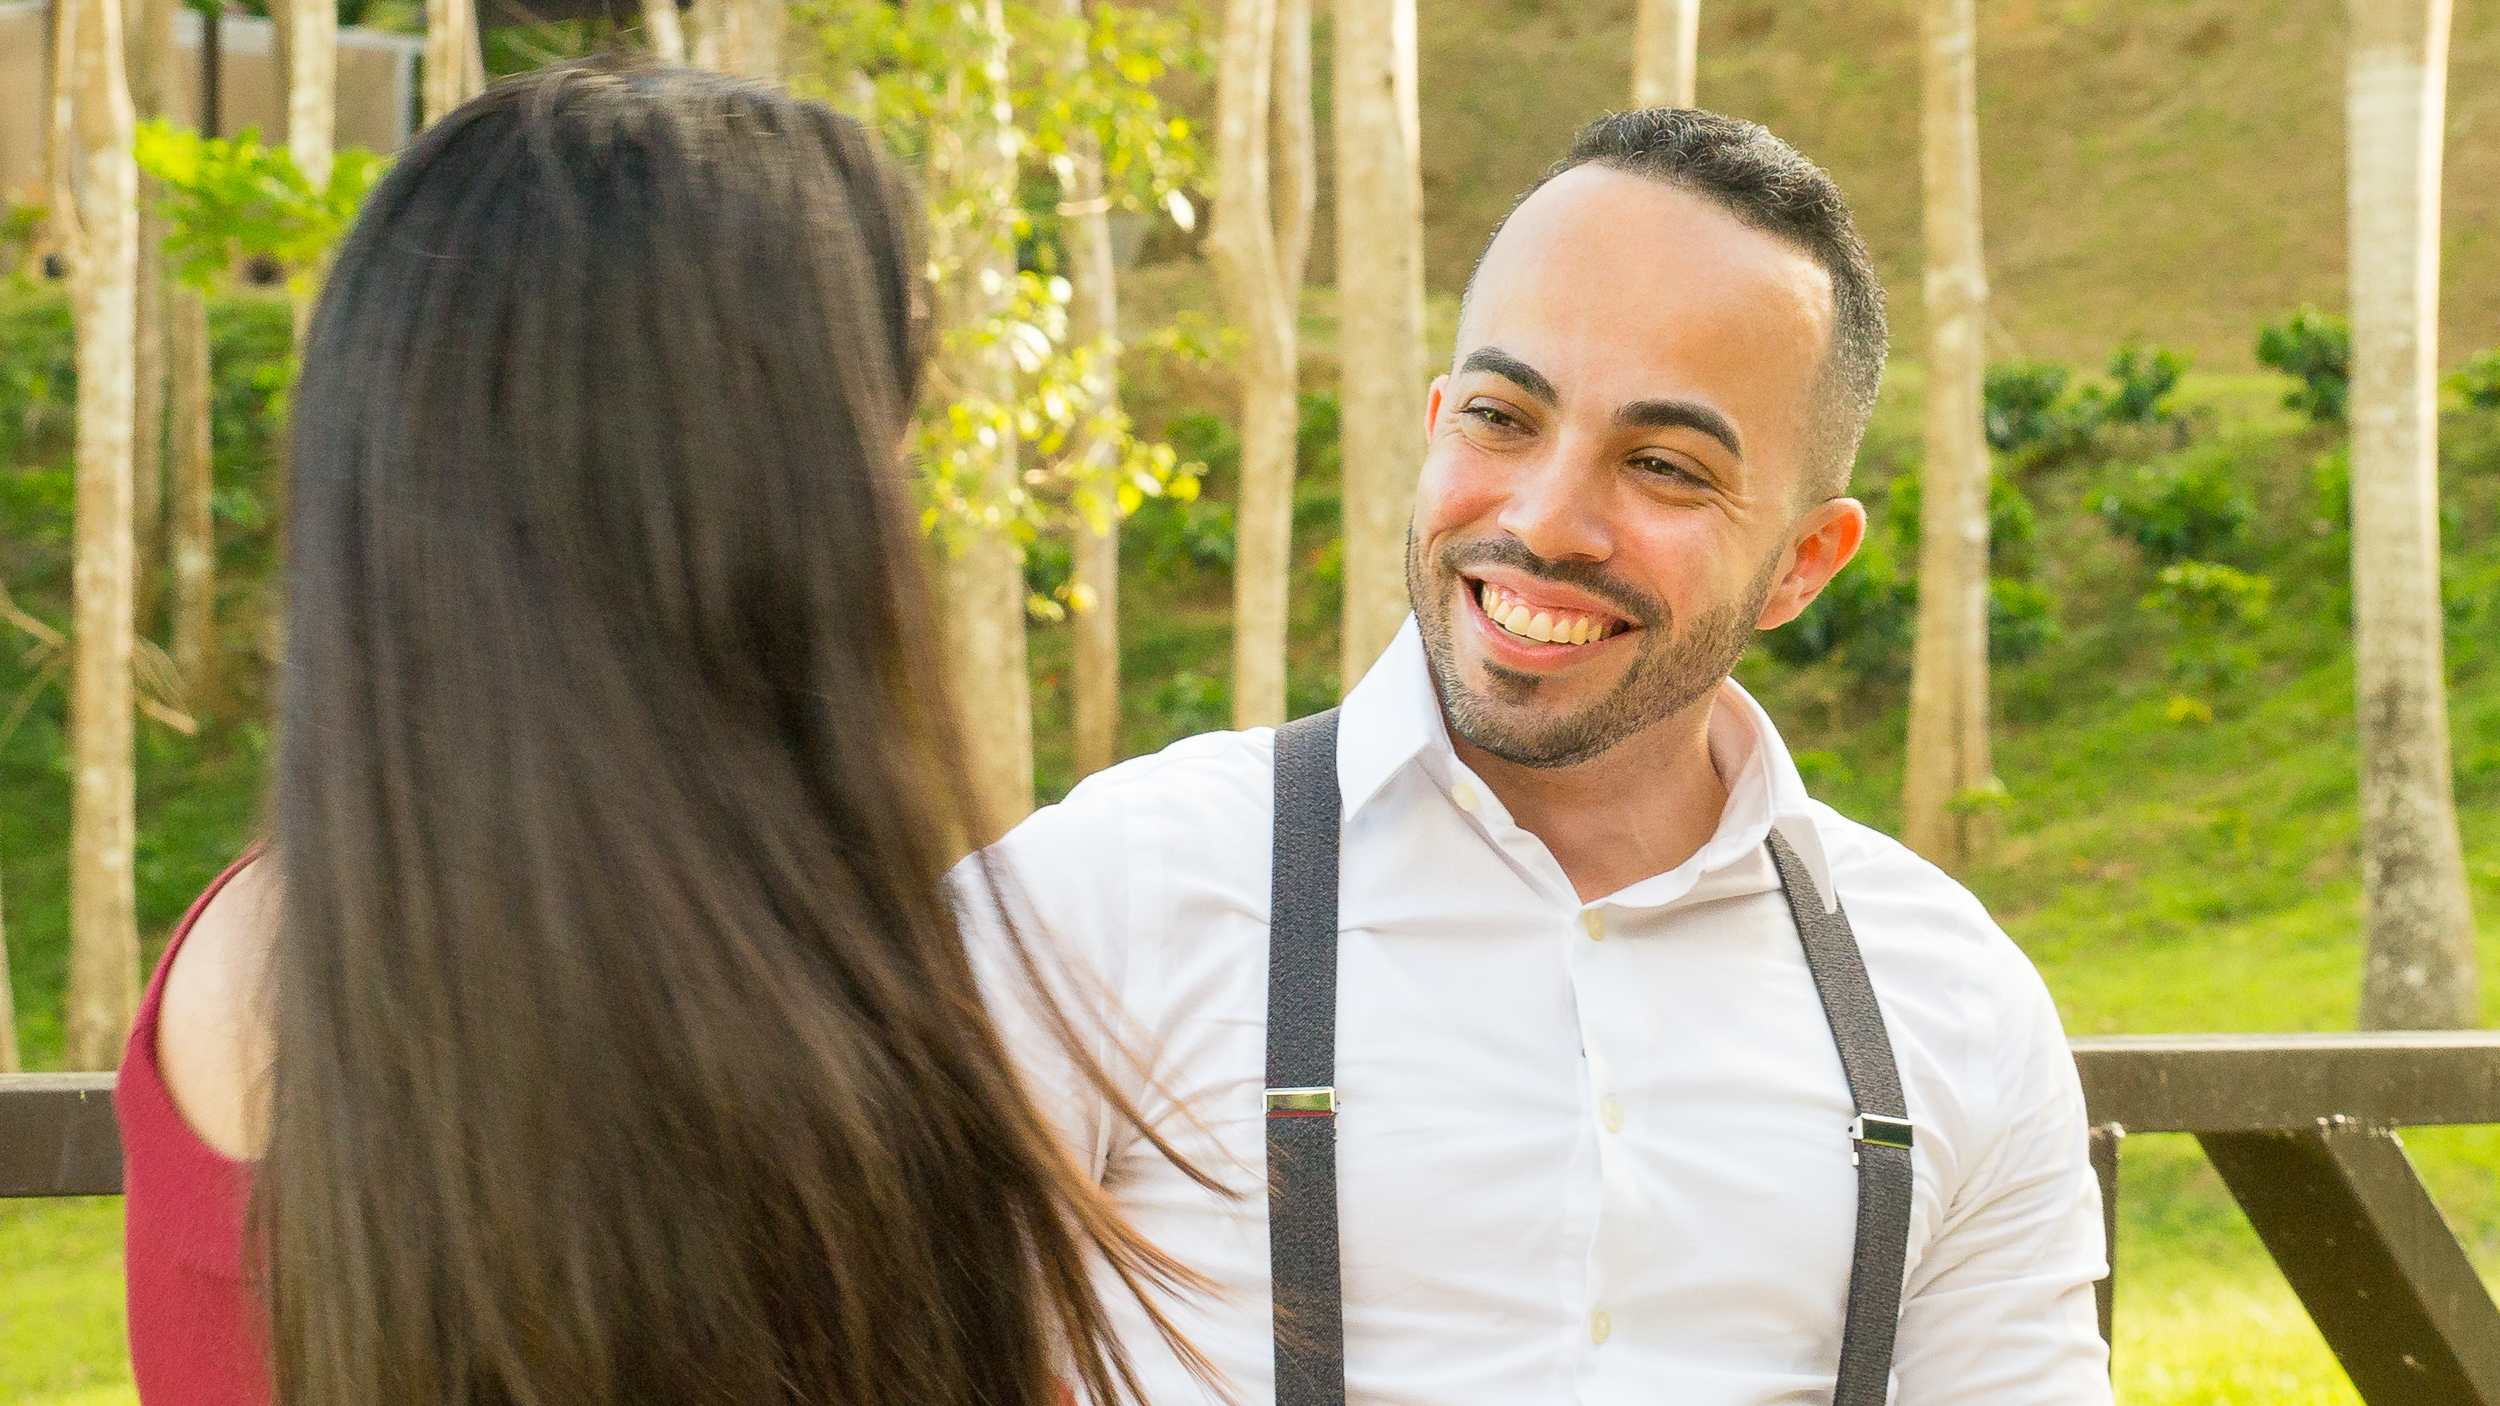 Marriage proposal in Puerto rico-37.jpg